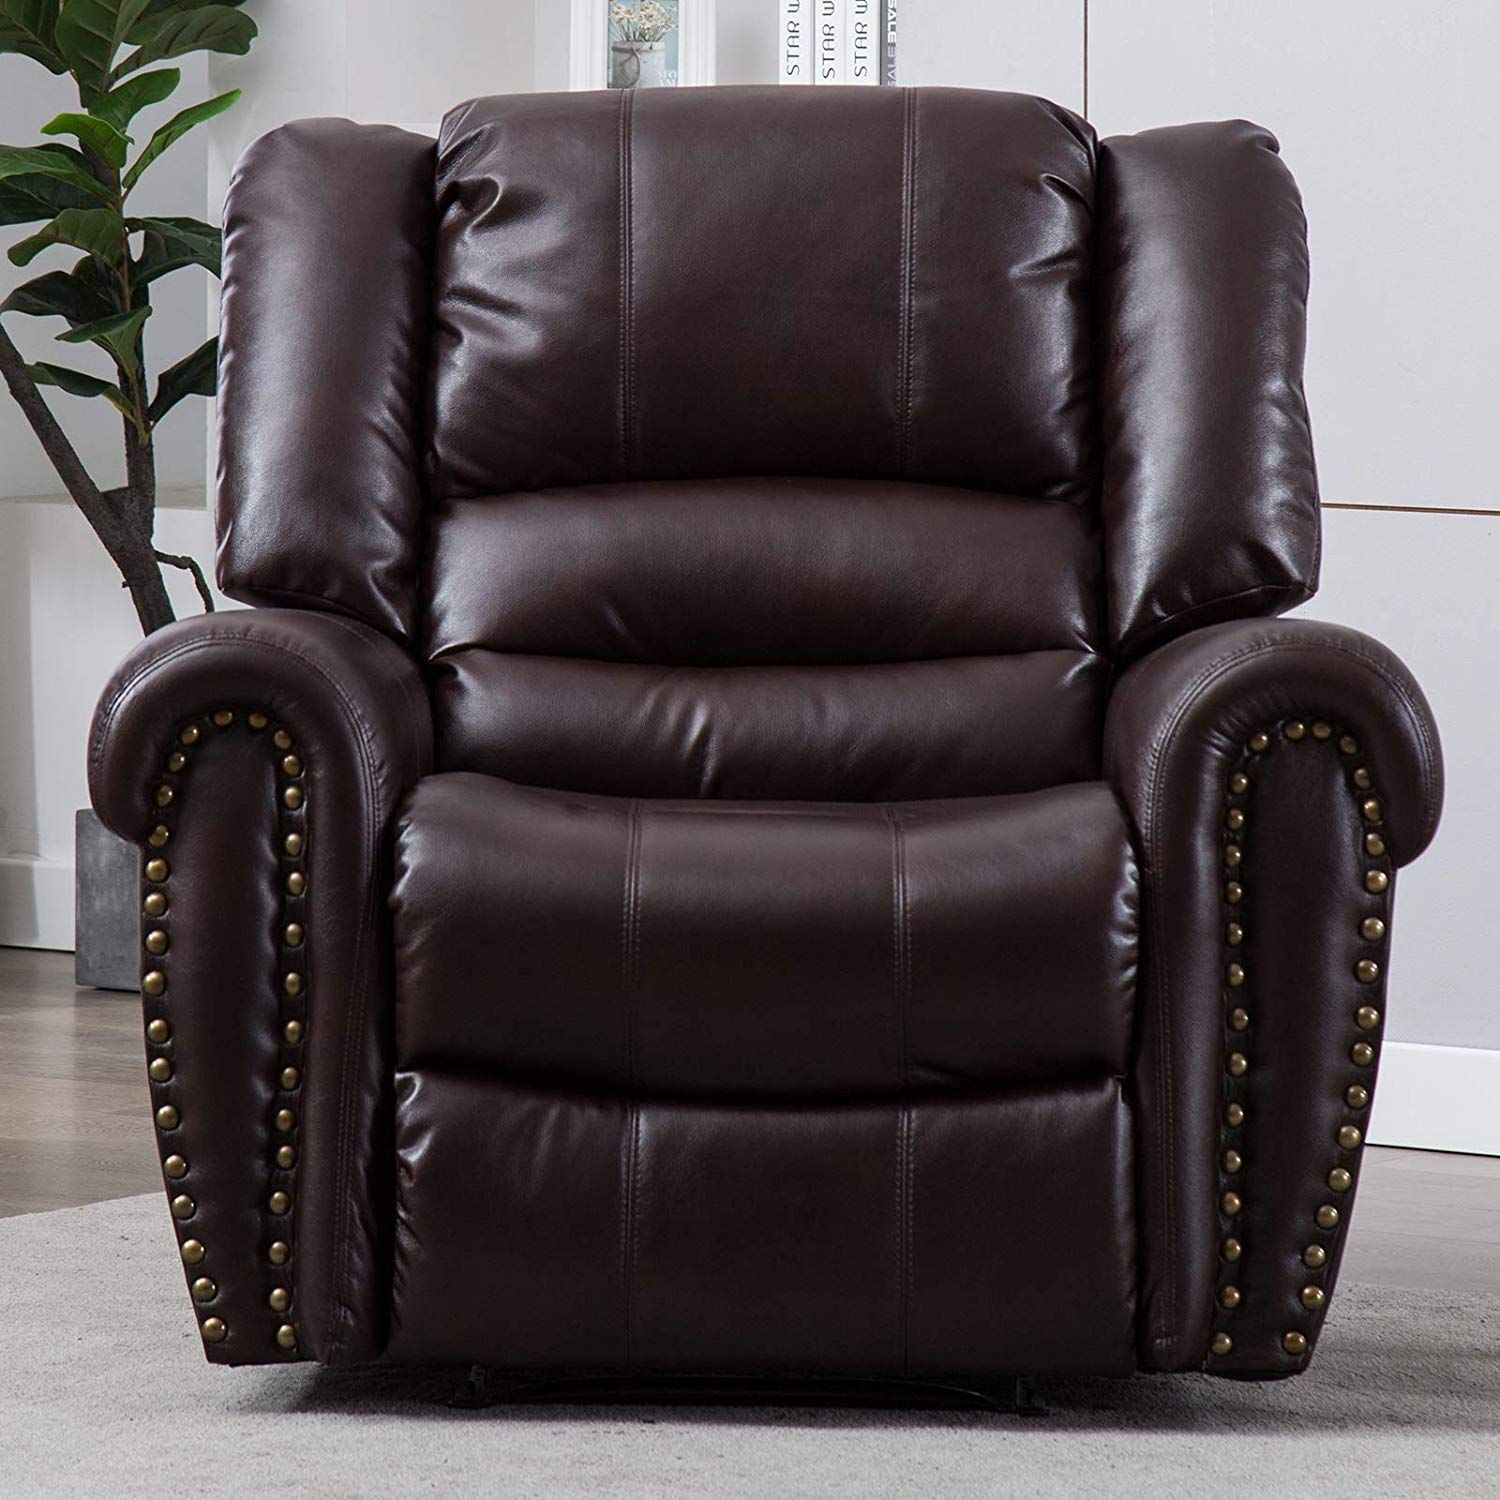 Outstanding Best Recliners The Top 10 Reclining Chairs Of 2019 Evergreenethics Interior Chair Design Evergreenethicsorg